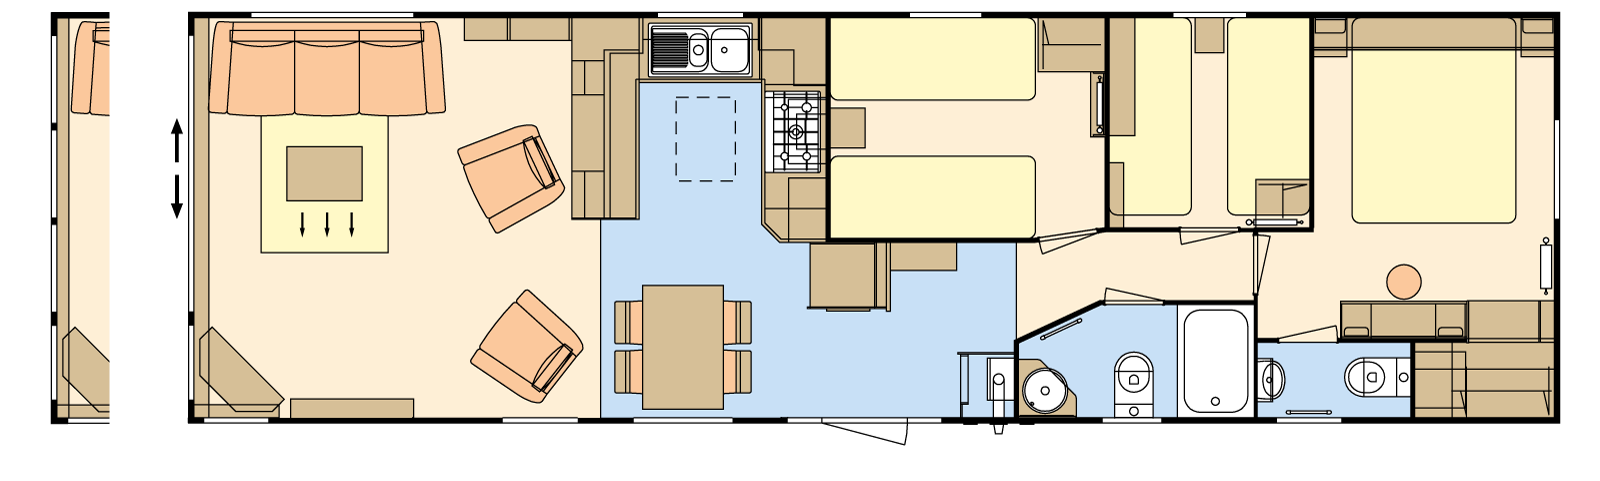 41 × 12-6 – 3 bedroom/8 berth